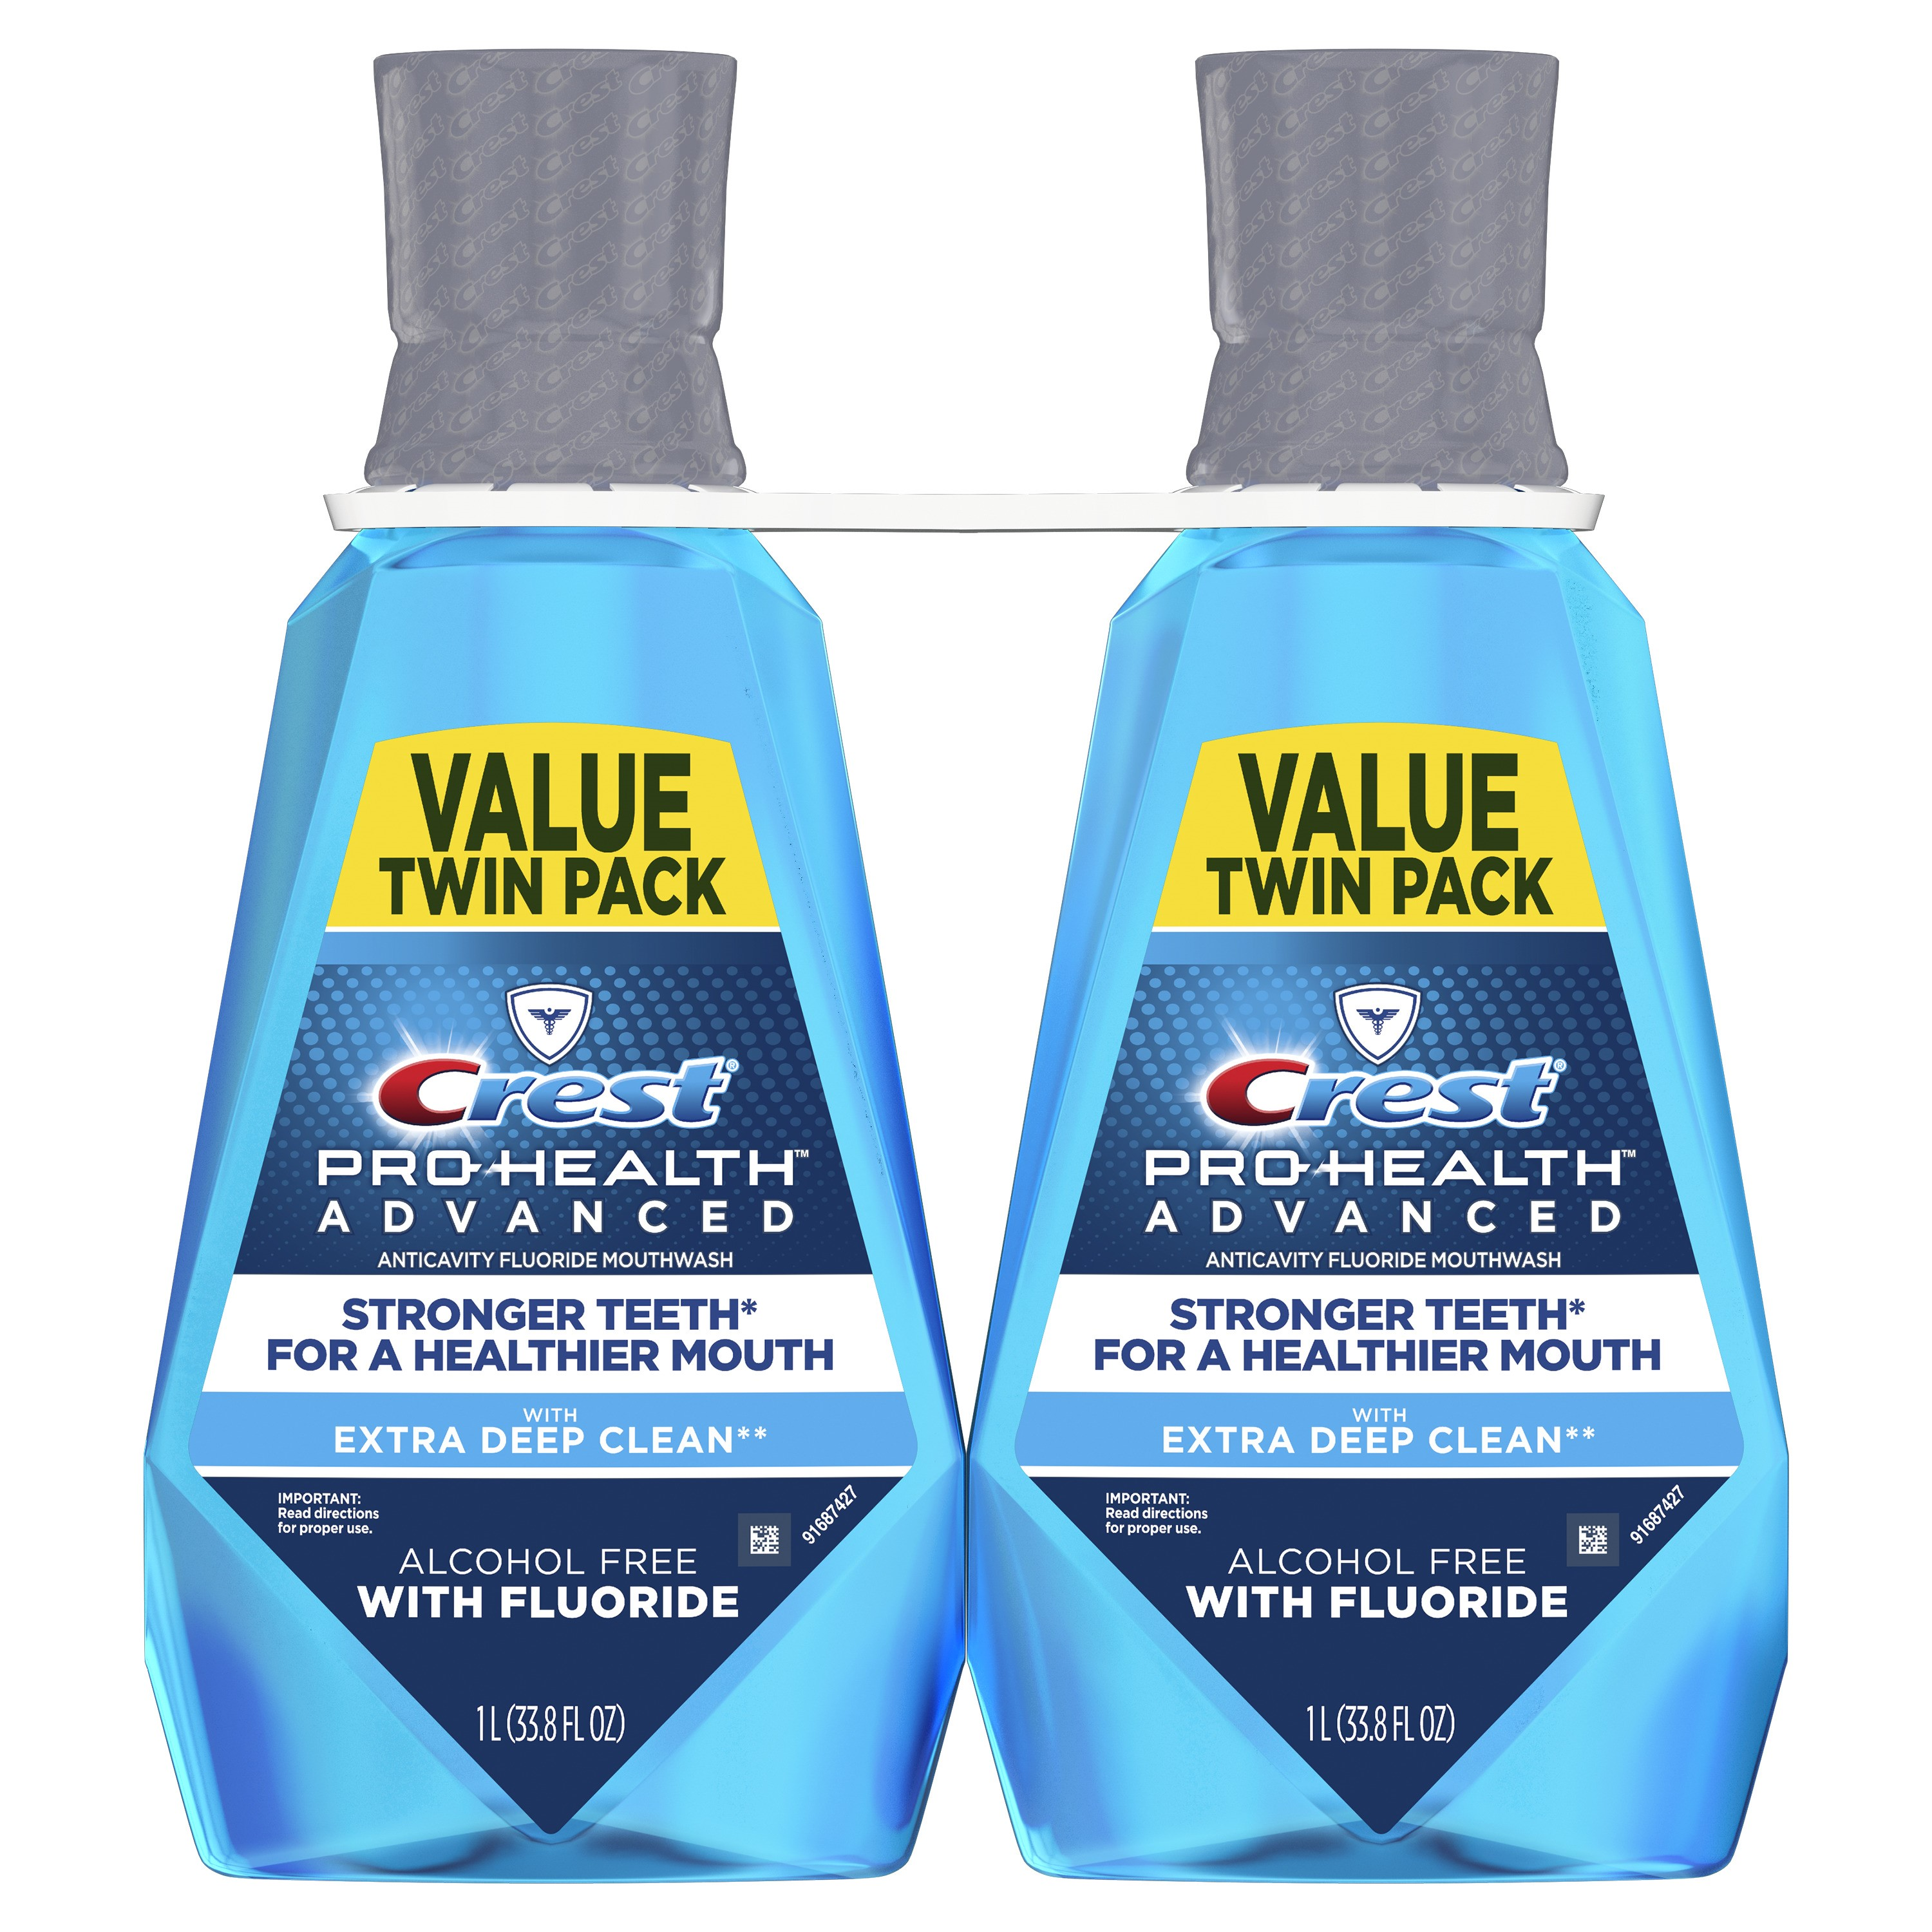 Crest Pro-Health Advanced, Extra Deep Clean Mouthwash, Fresh Mint, 1 L, Pack of 2